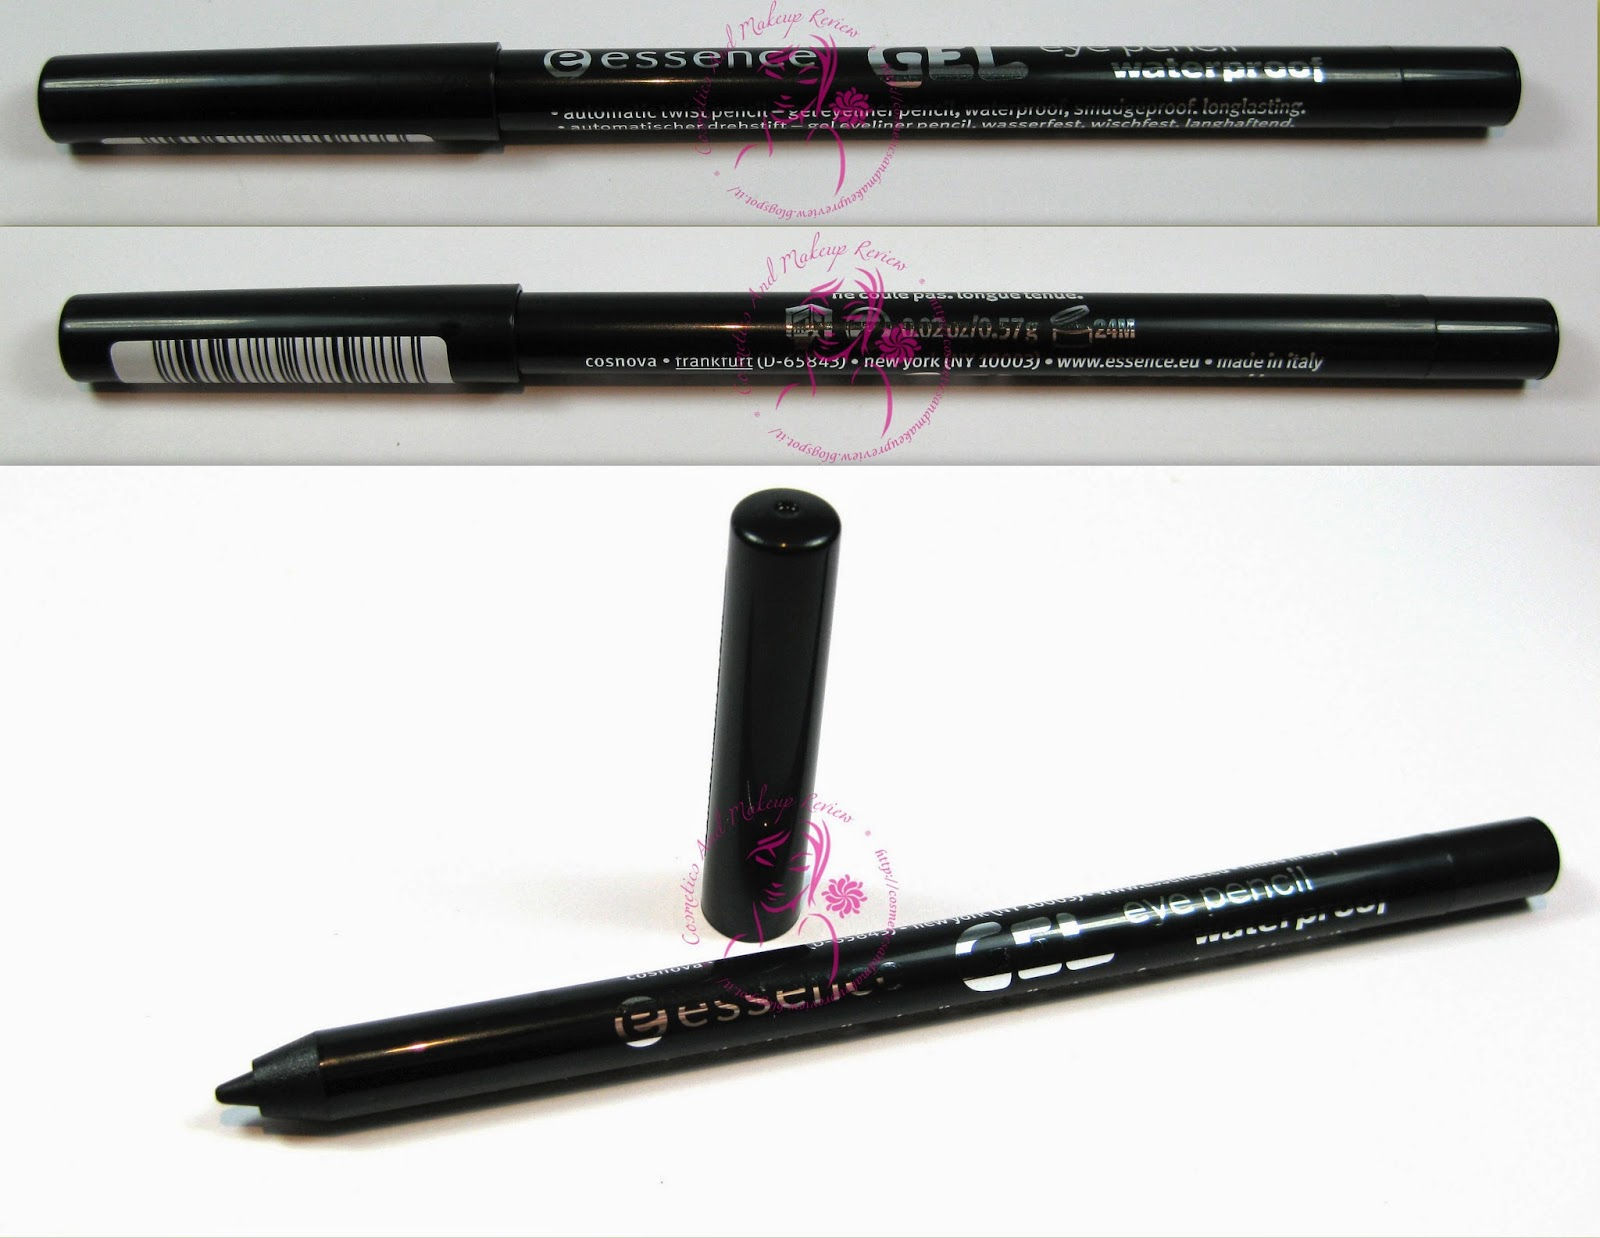 Essence - Gel Eye Pencil Waterproof - descrizione